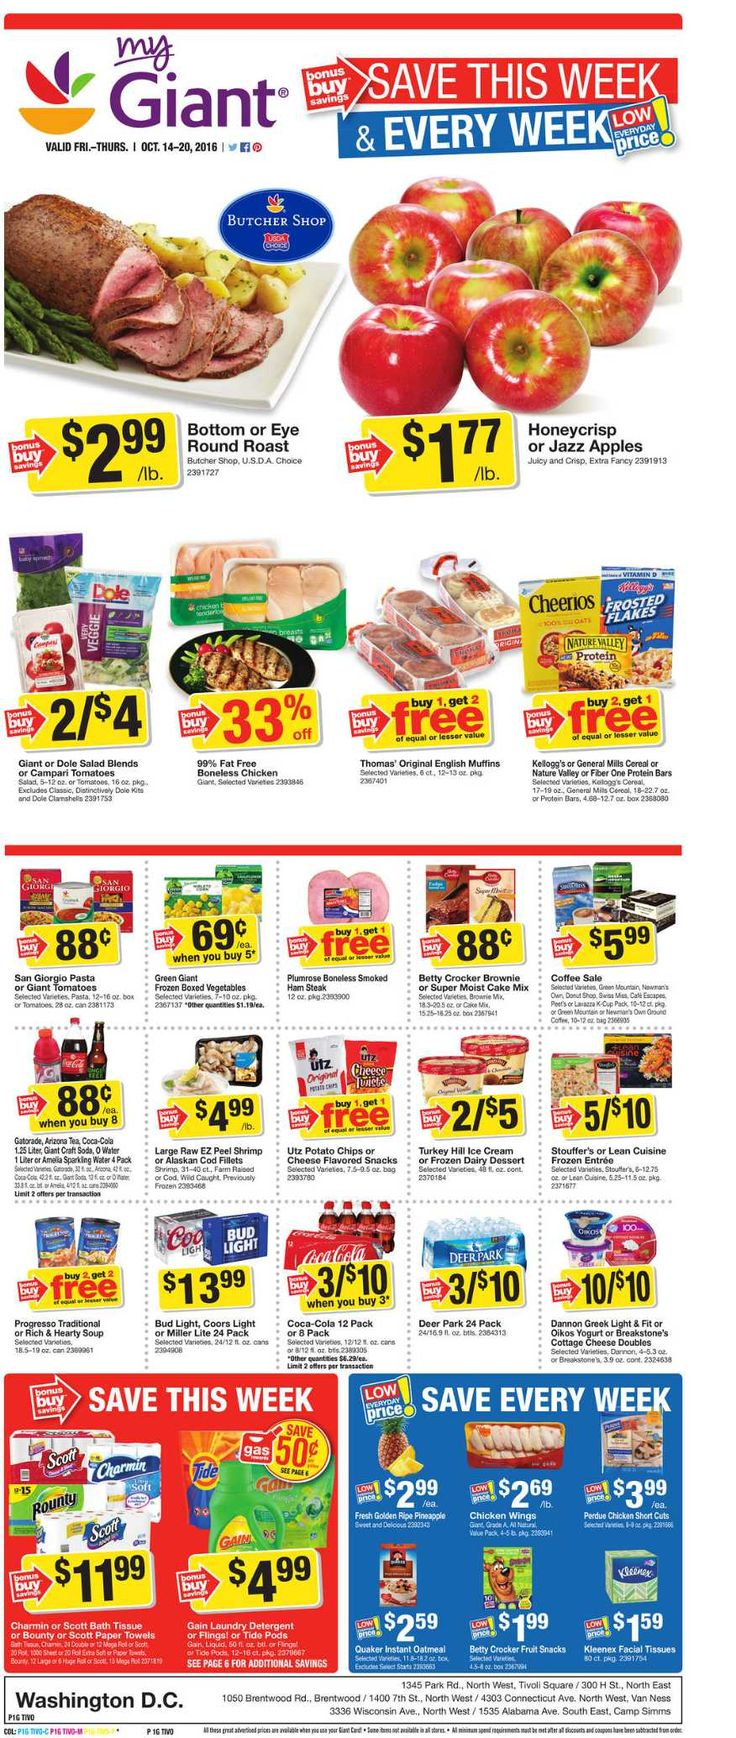 Giant Food Weekly Ad October 14 - 20, 2016 - http://www.olcatalog.com/grocery/giant-food-weekly-ad.html